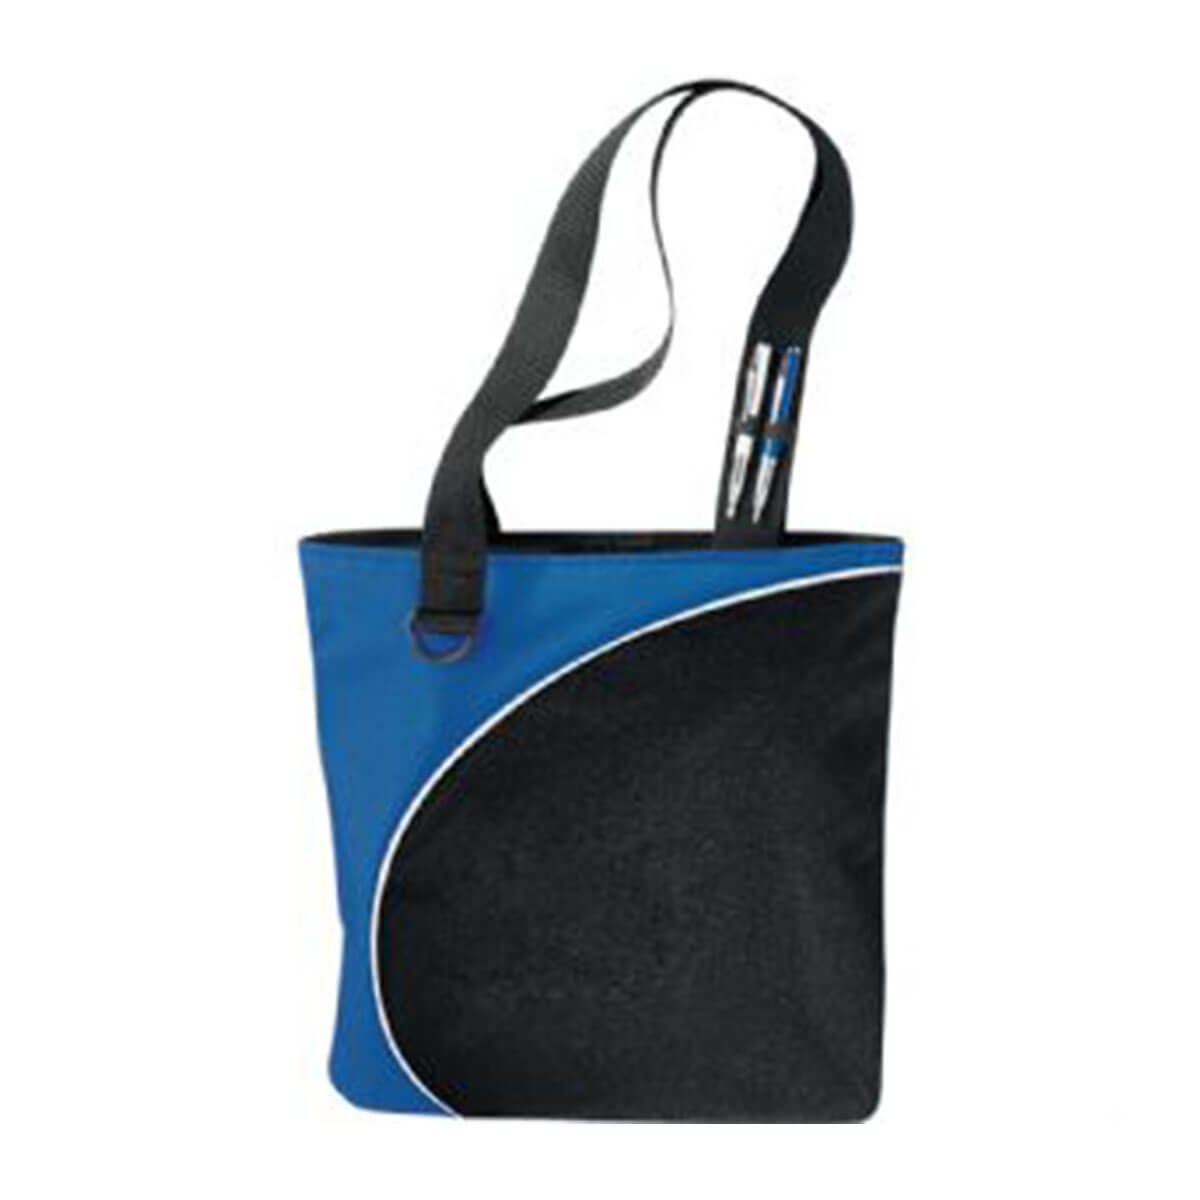 Lunar Convention Tote-Black and Blue with White Trim.